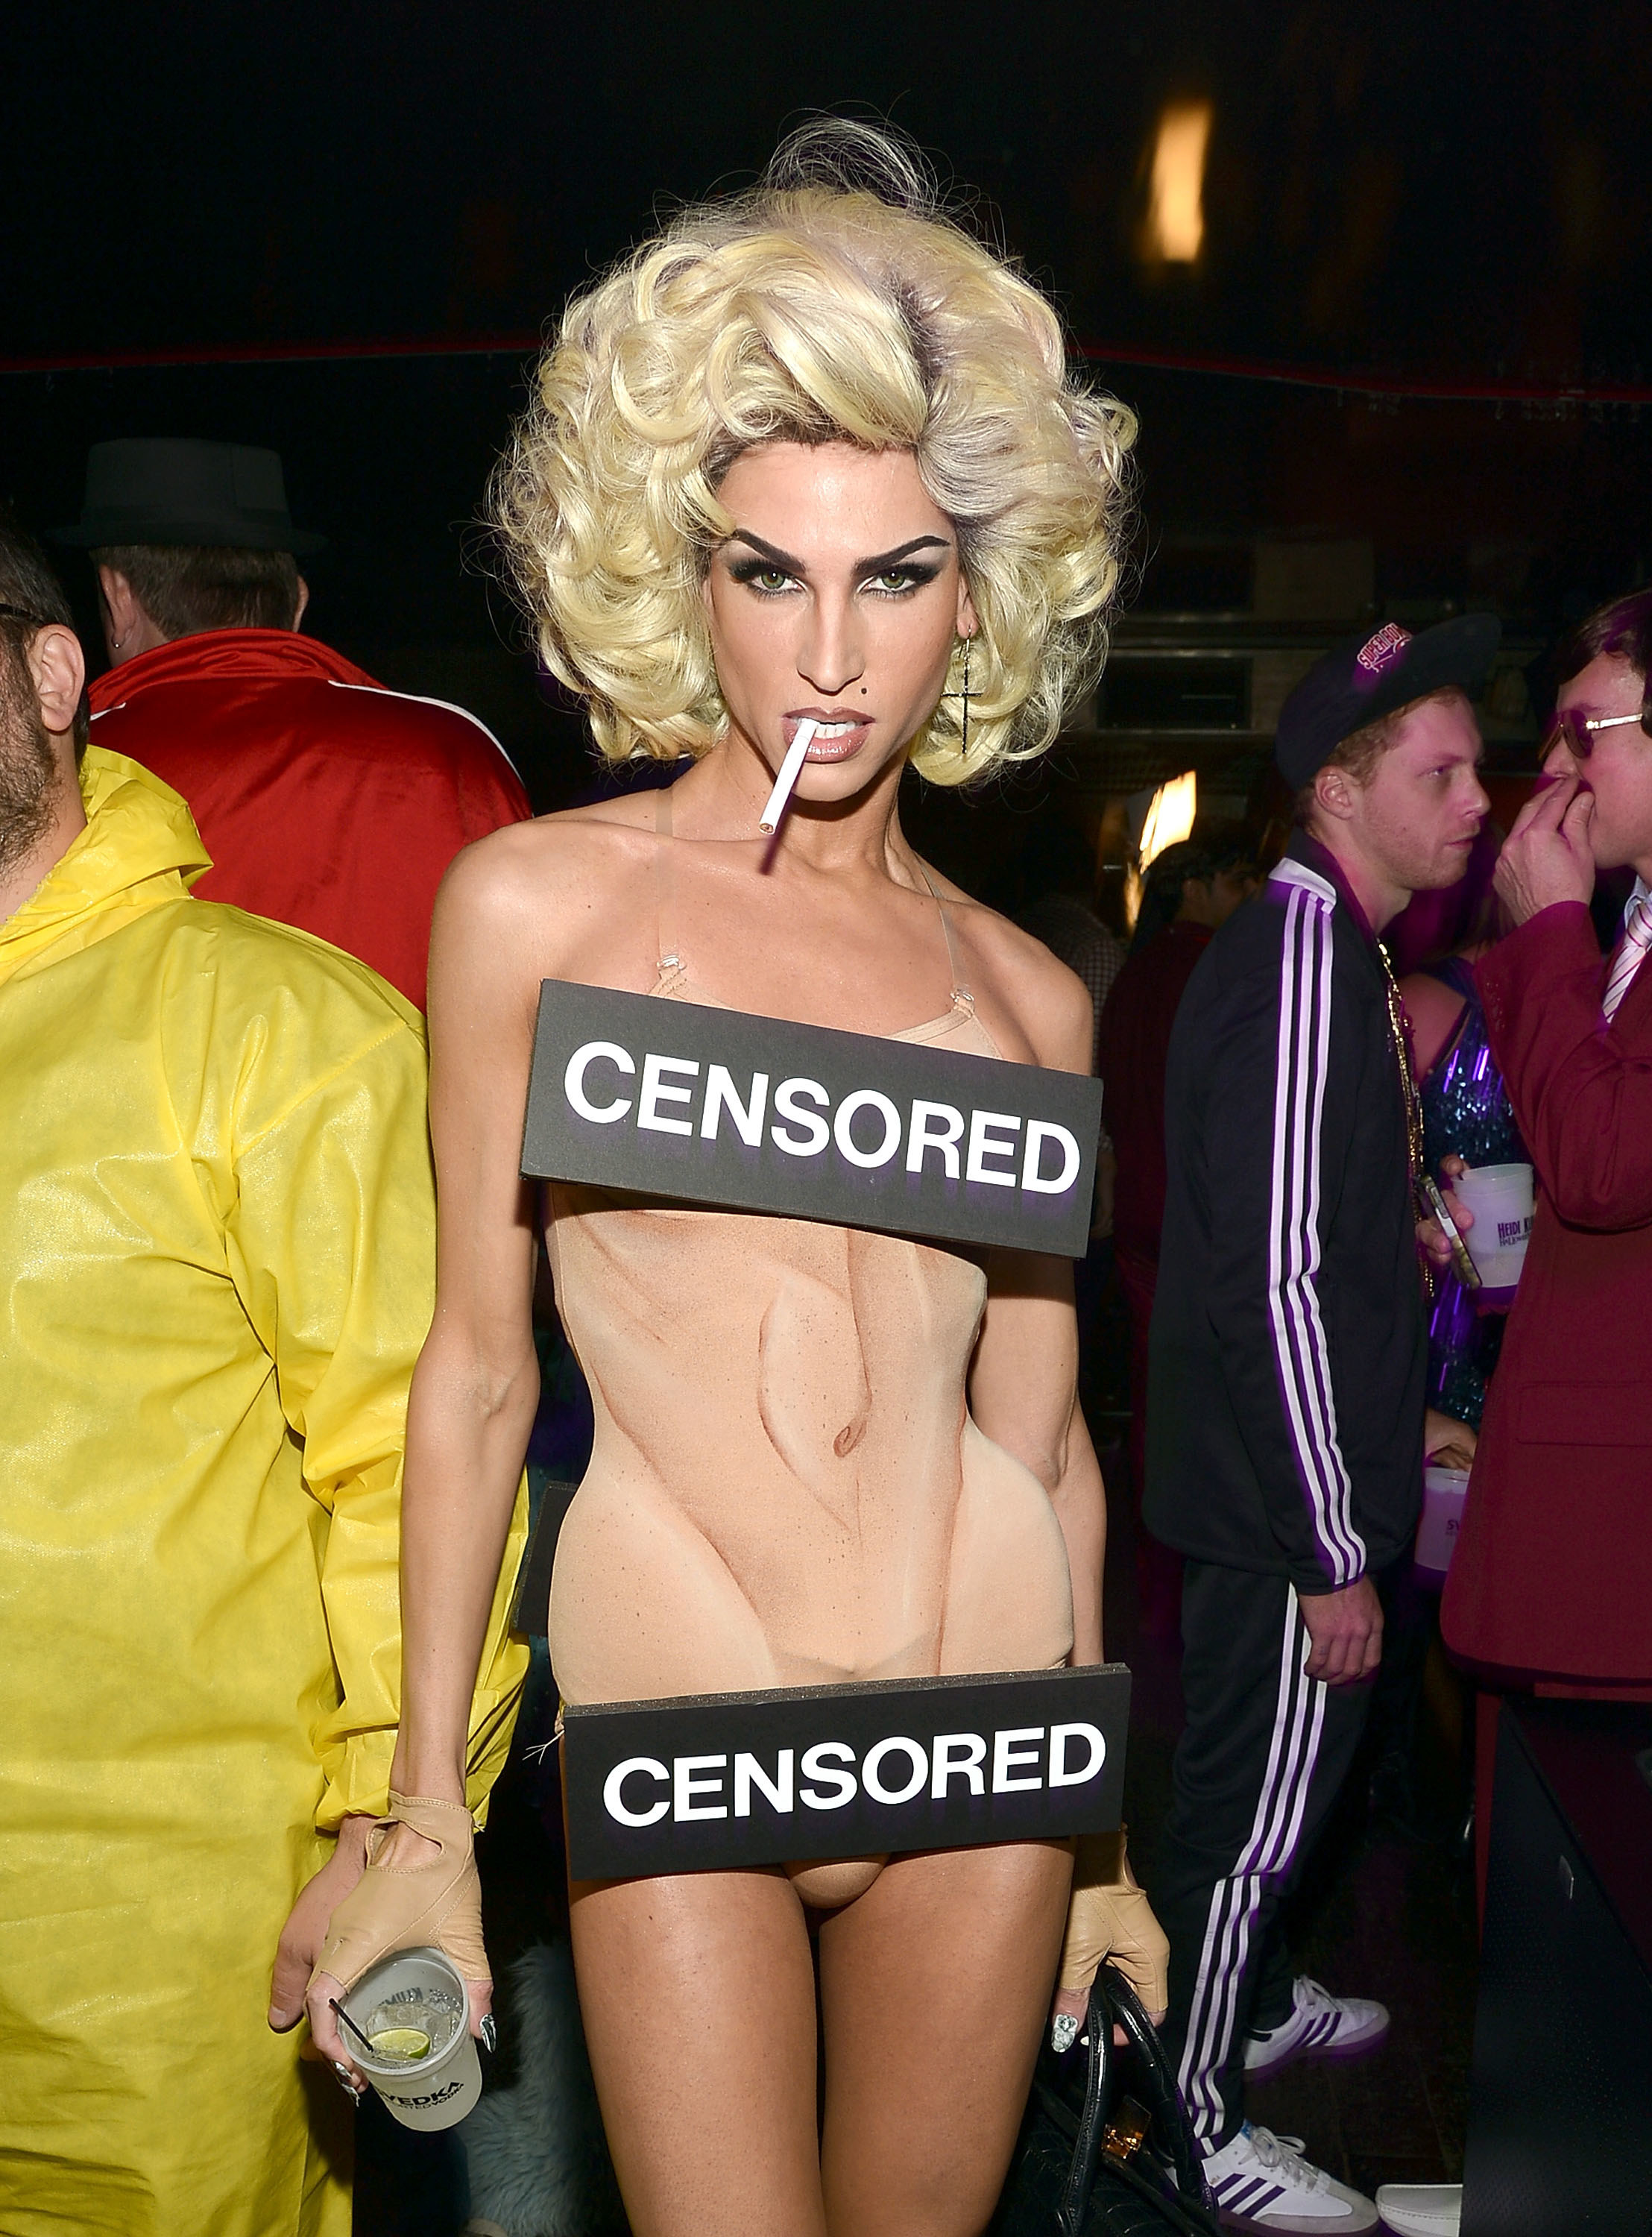 Man who appears naked with make-up and censored bars at a Halloween party.